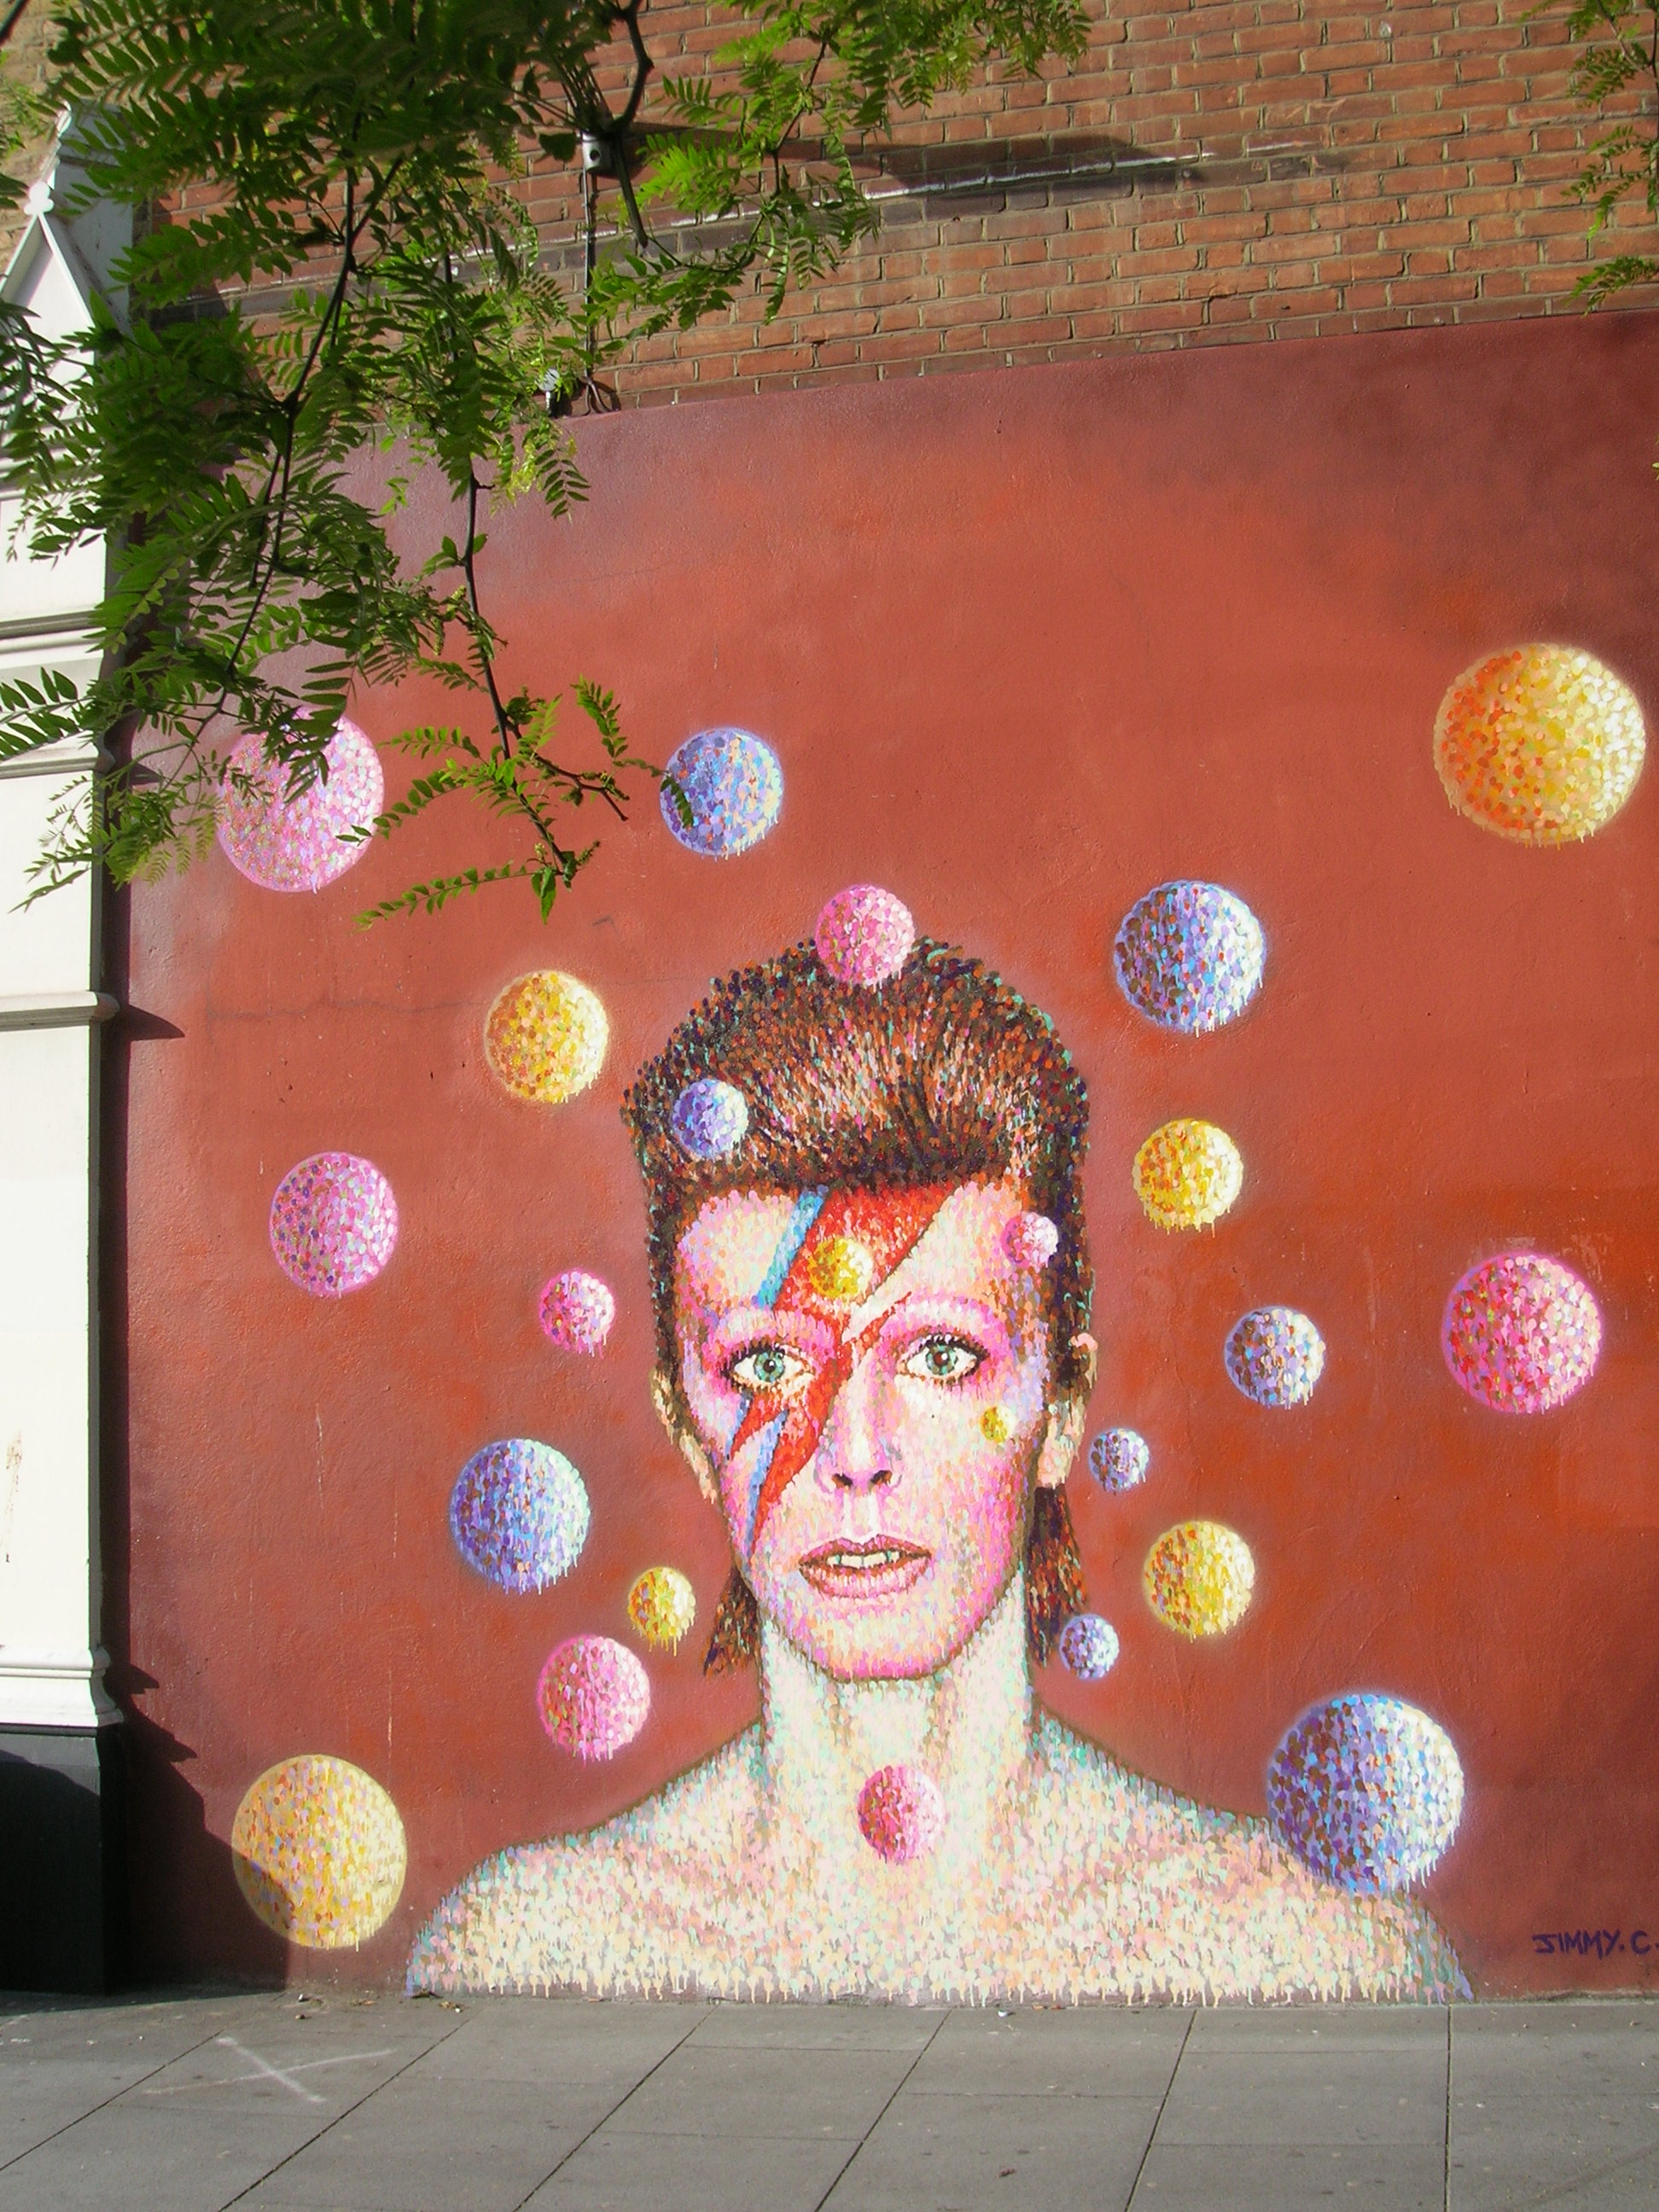 Aladdin Sane - photo by Juliamaud